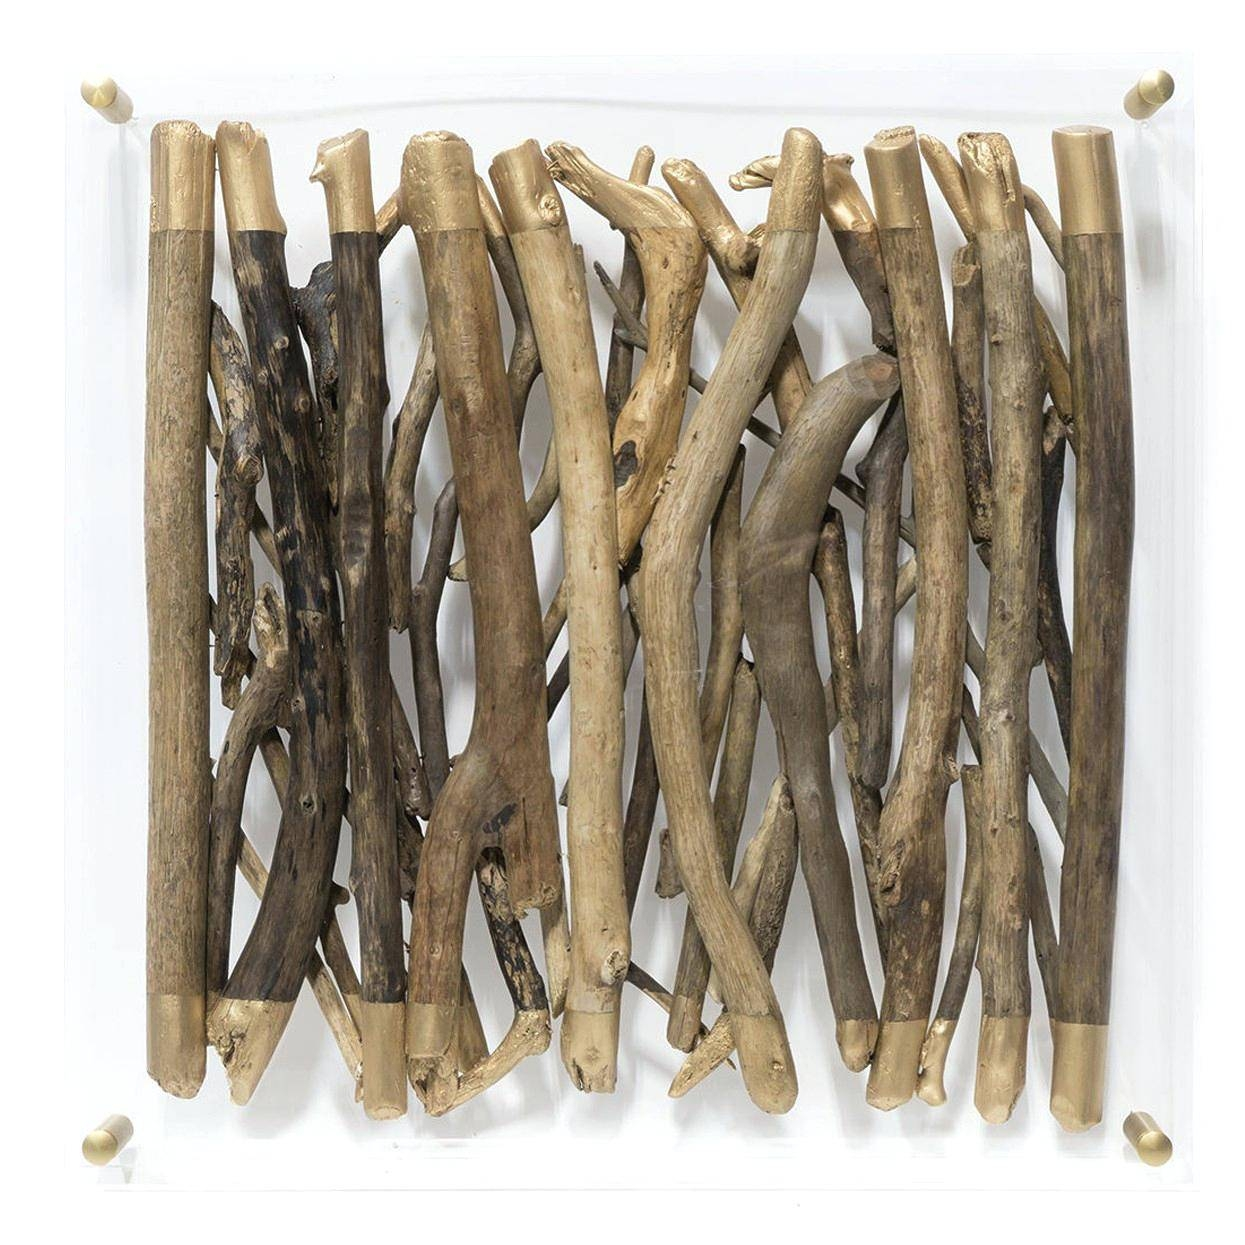 Wall Ideas : Driftwood Peace Sign Wall Decor White Driftwood Wall With Regard To Most Recent Driftwood Wall Art For Sale (View 18 of 30)